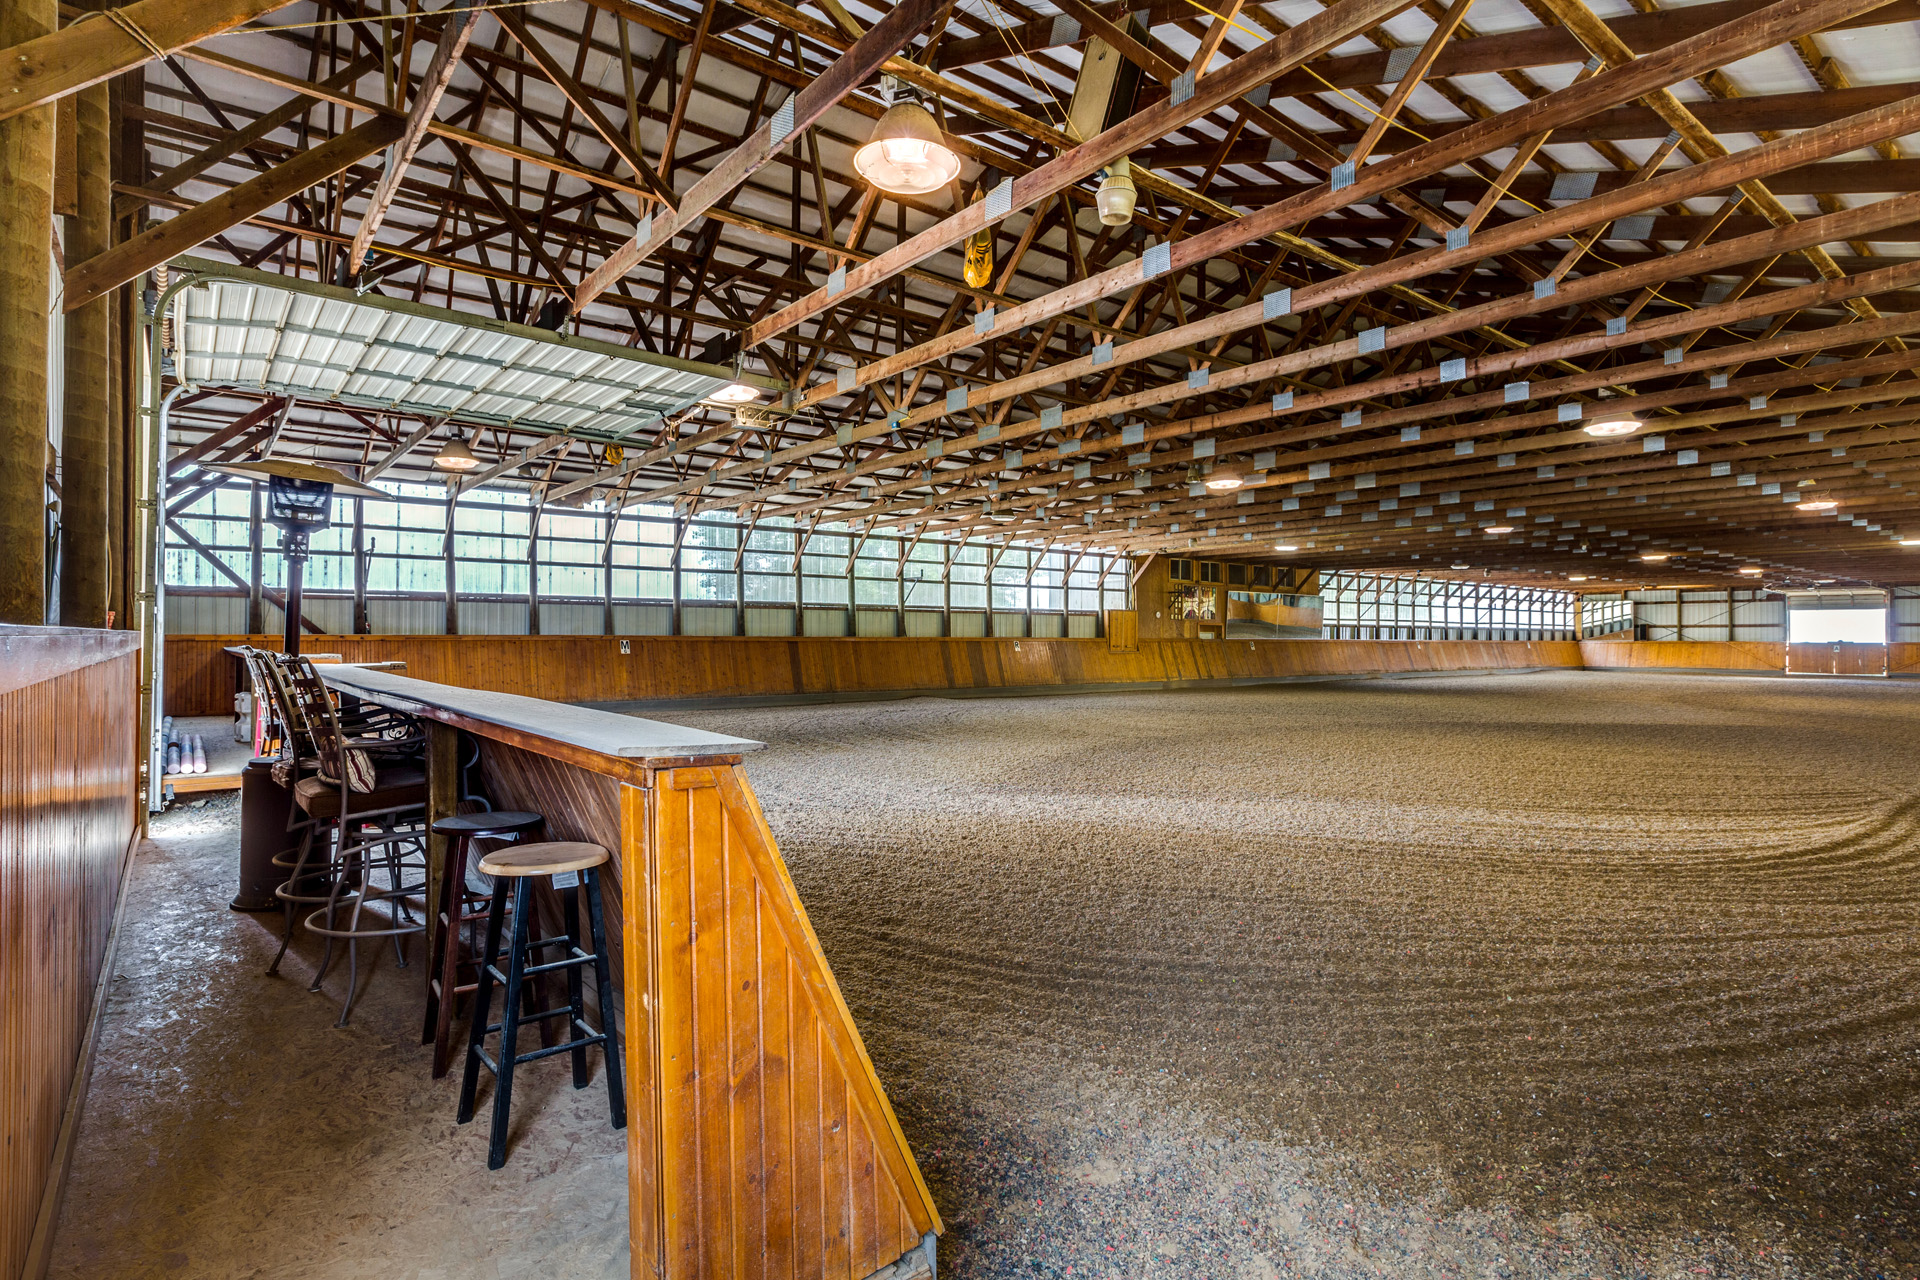 INDOOR ARENA SEATING